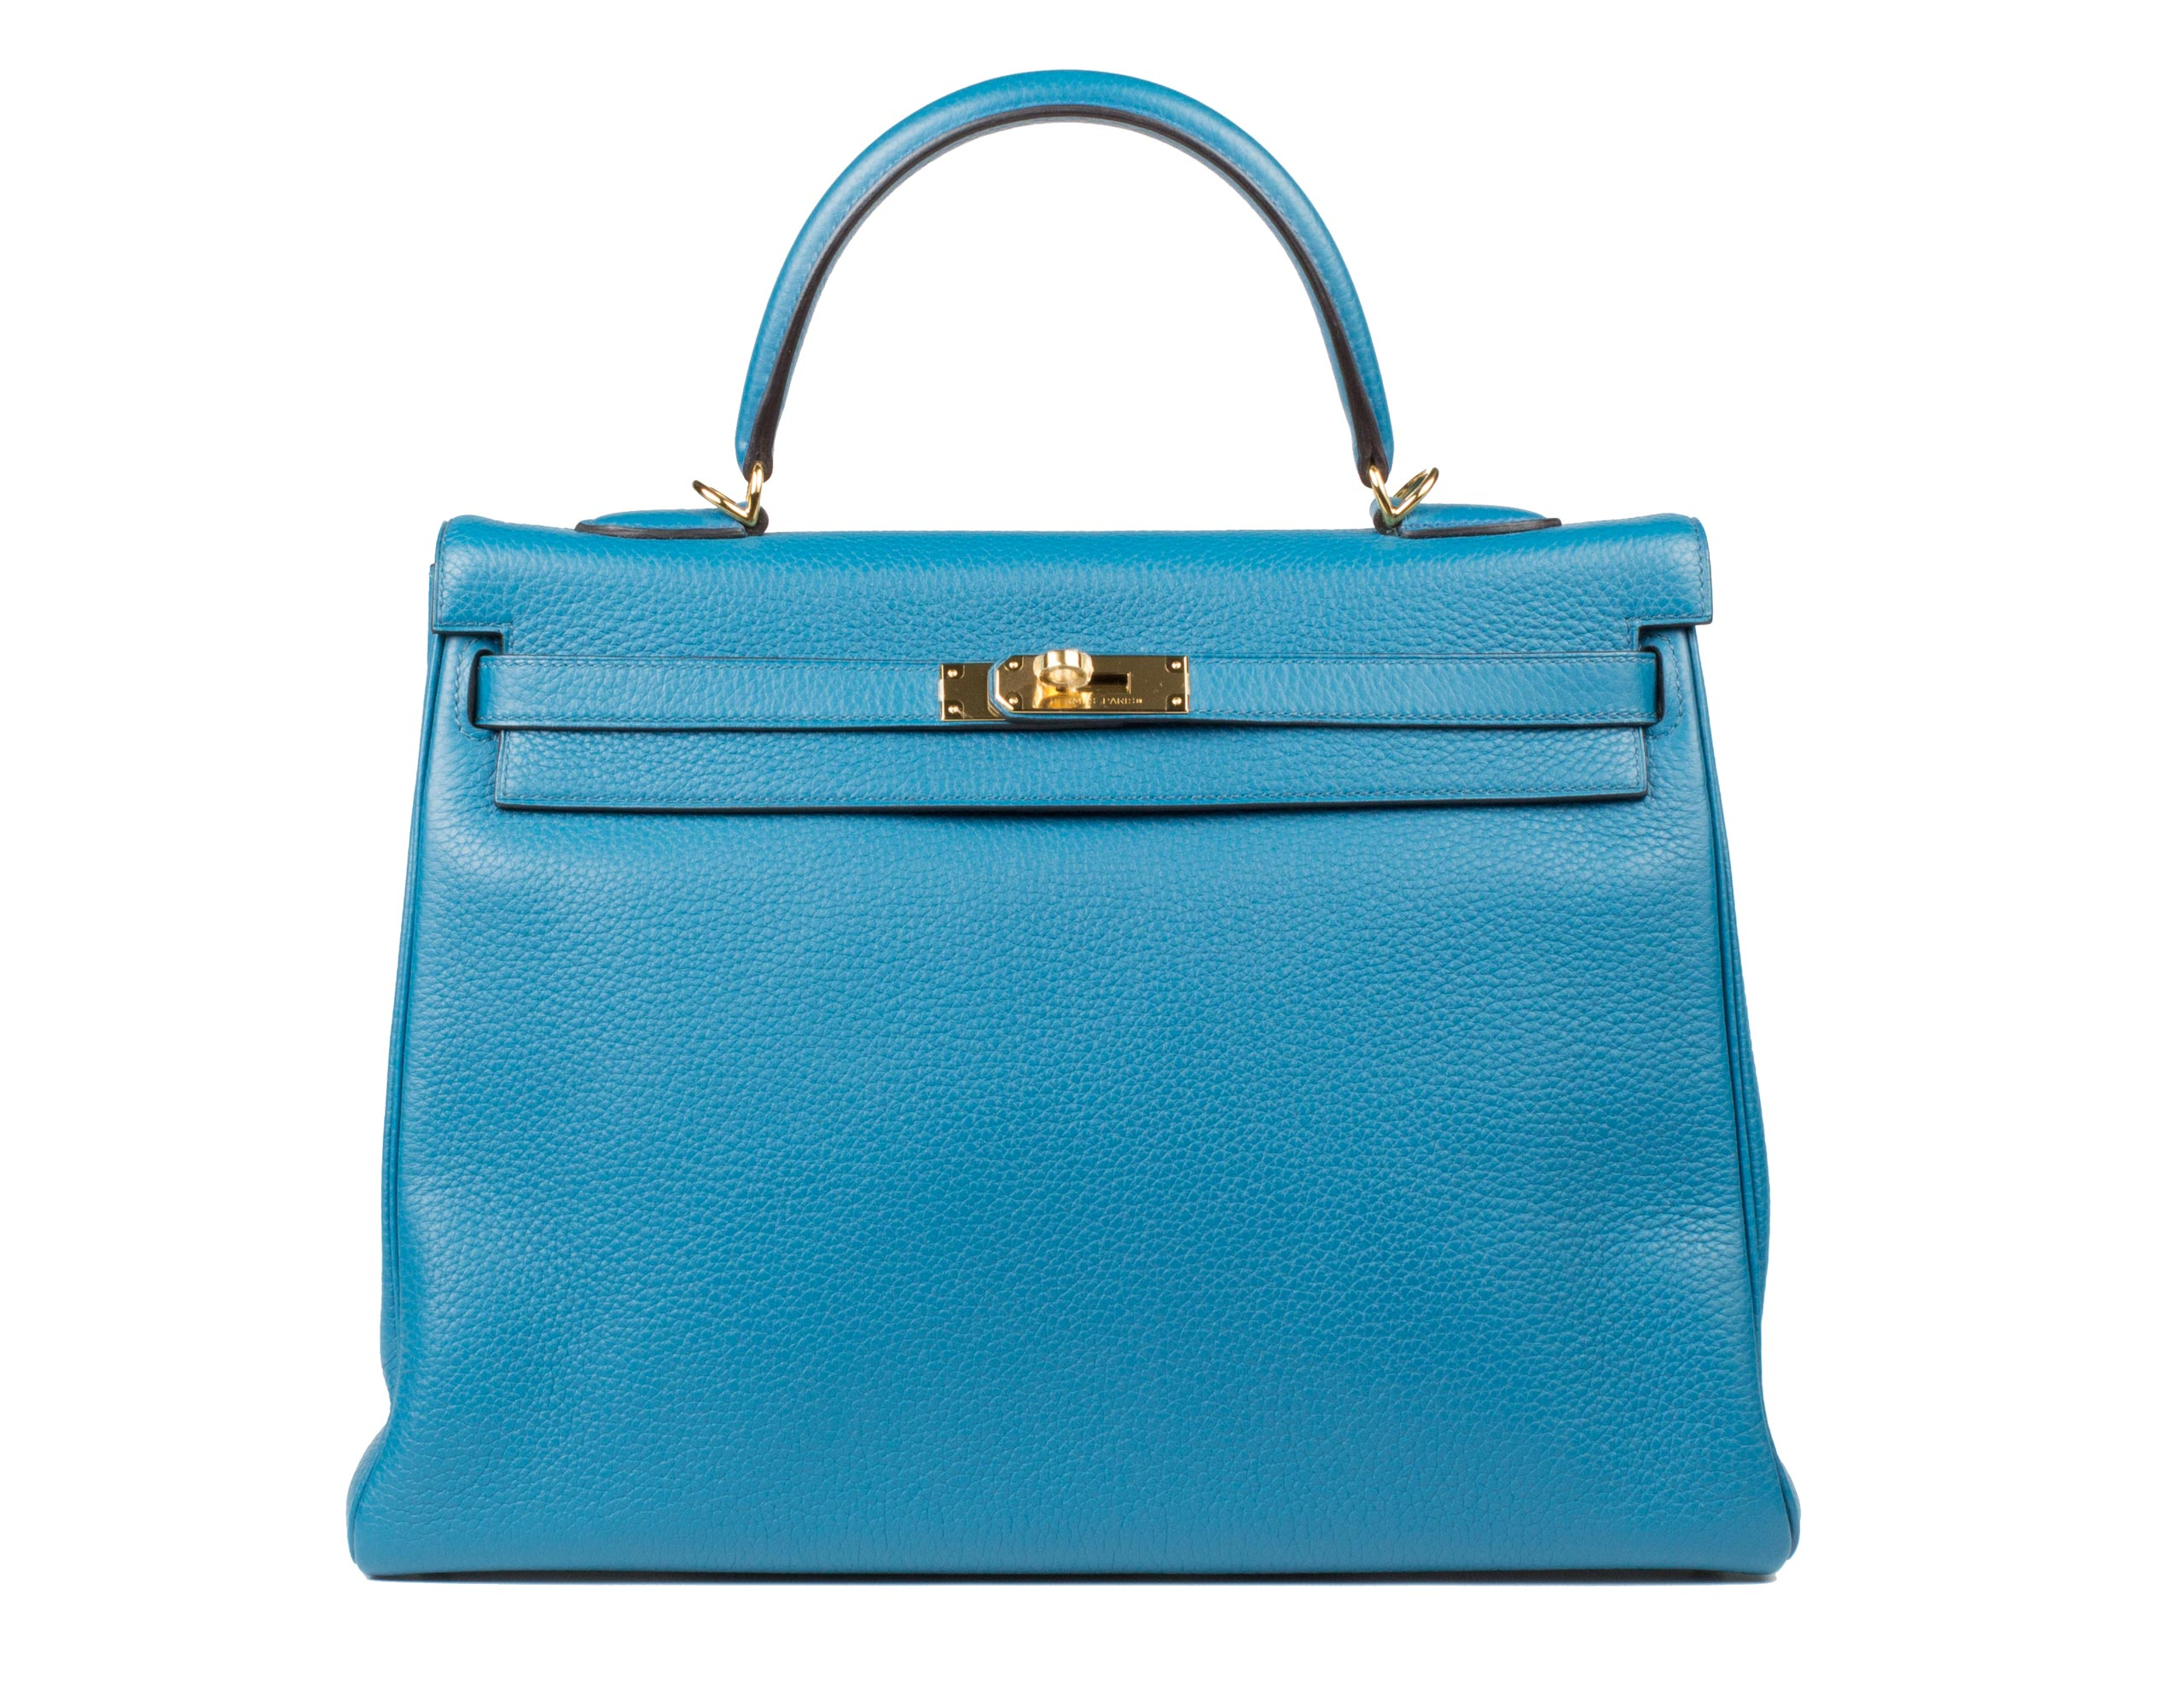 Hermes Bag Kelly Blue Izmir Togo 35cm K74 Front